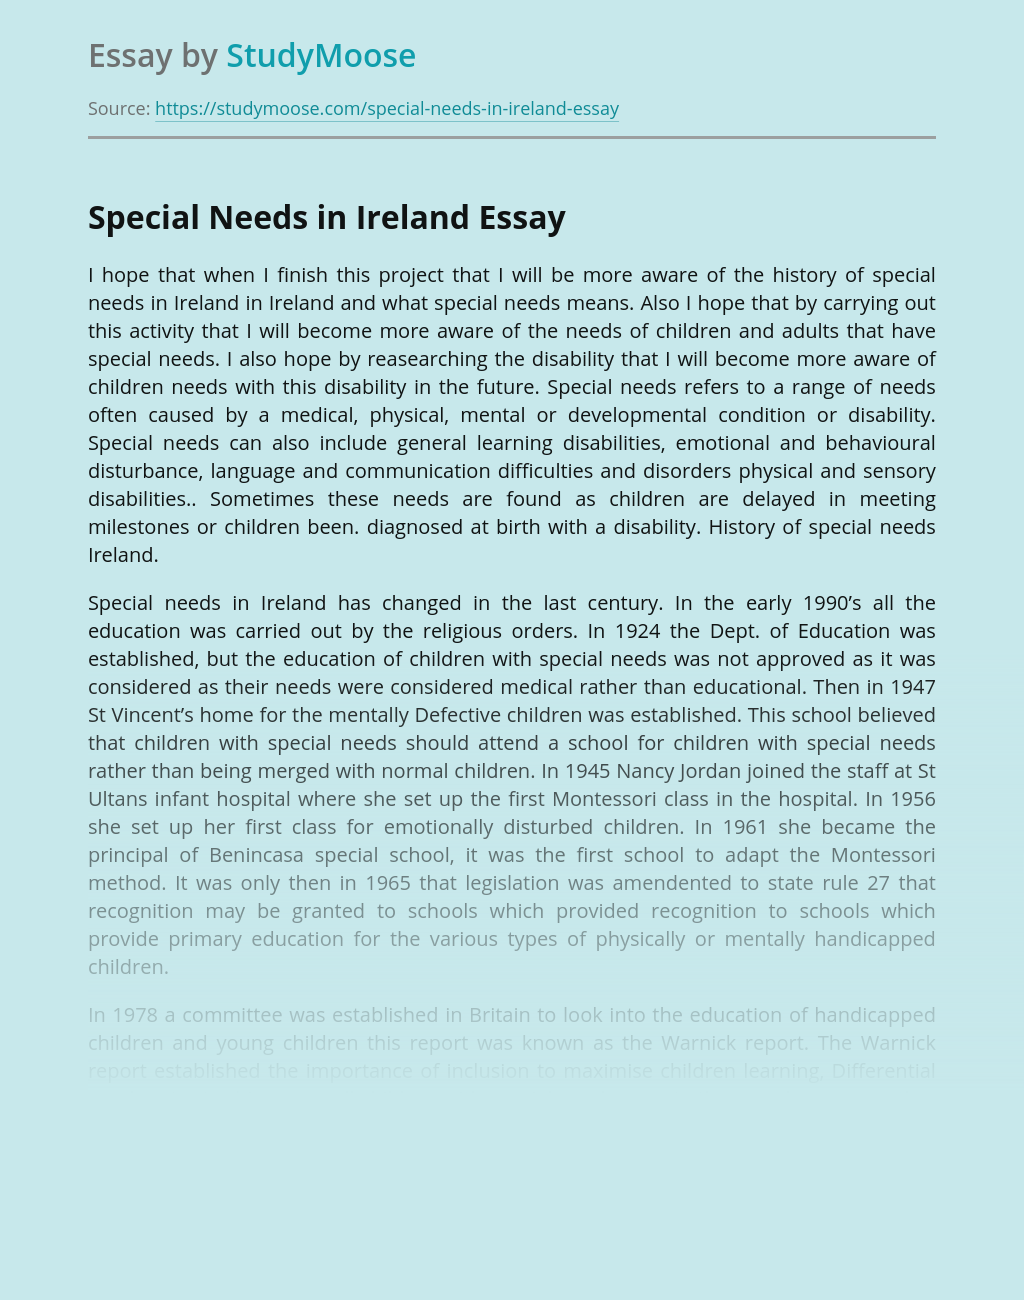 Special Education in Ireland for Special Needs Kids